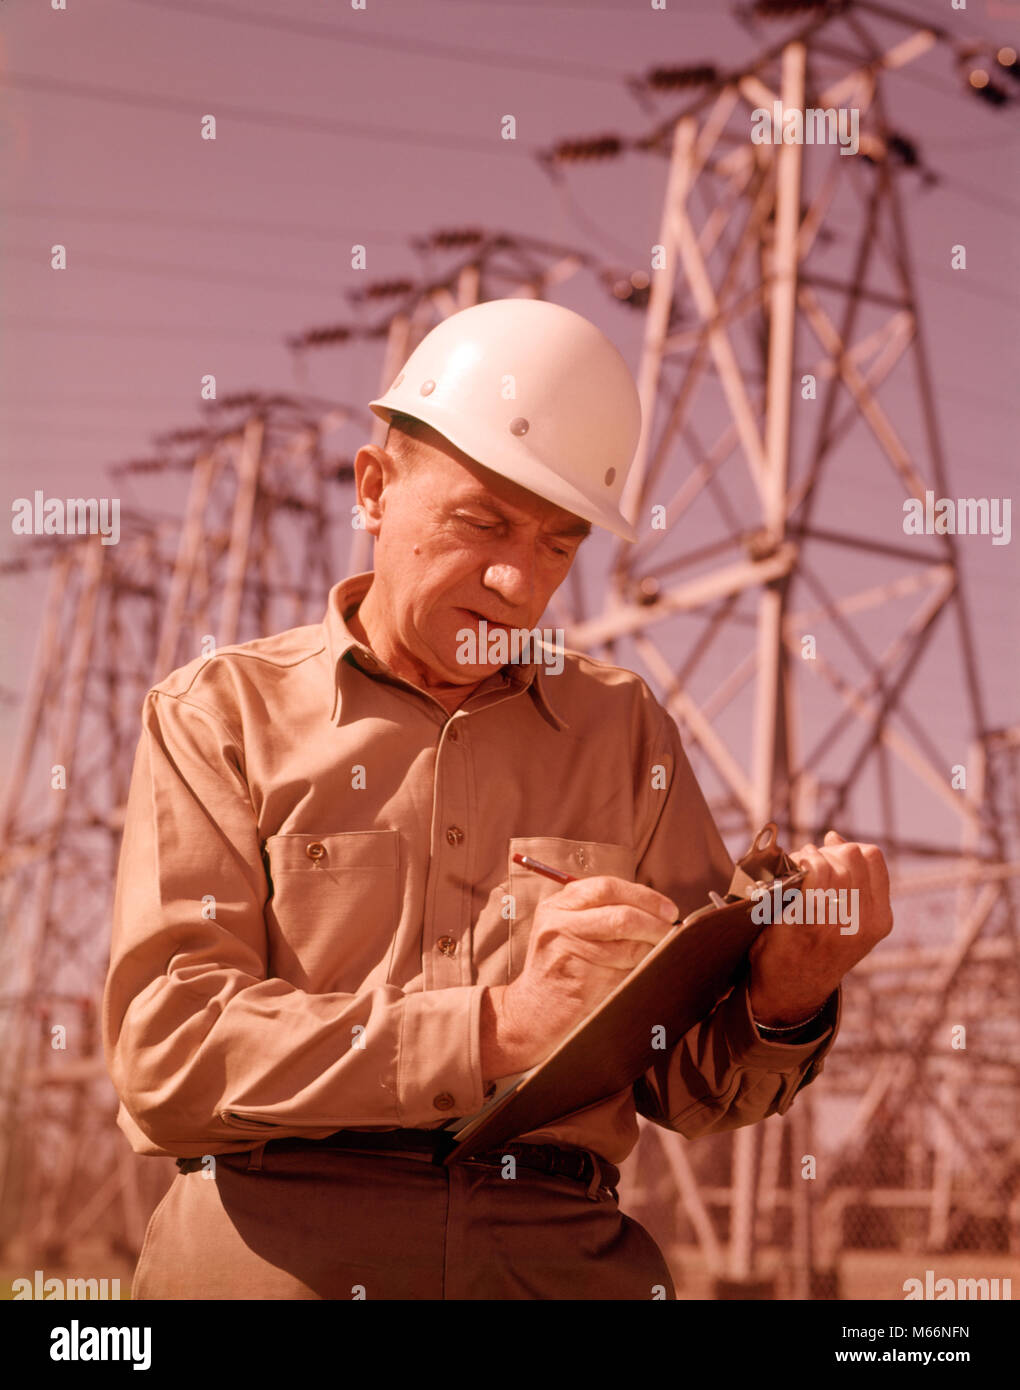 1960s MAN WORKER CLIPBOARD HARD HAT OUTDOORS BY ELECTRICAL POWER LINES - ks3412 HAR001 HARS COPY SPACE HALF-LENGTH - Stock Image